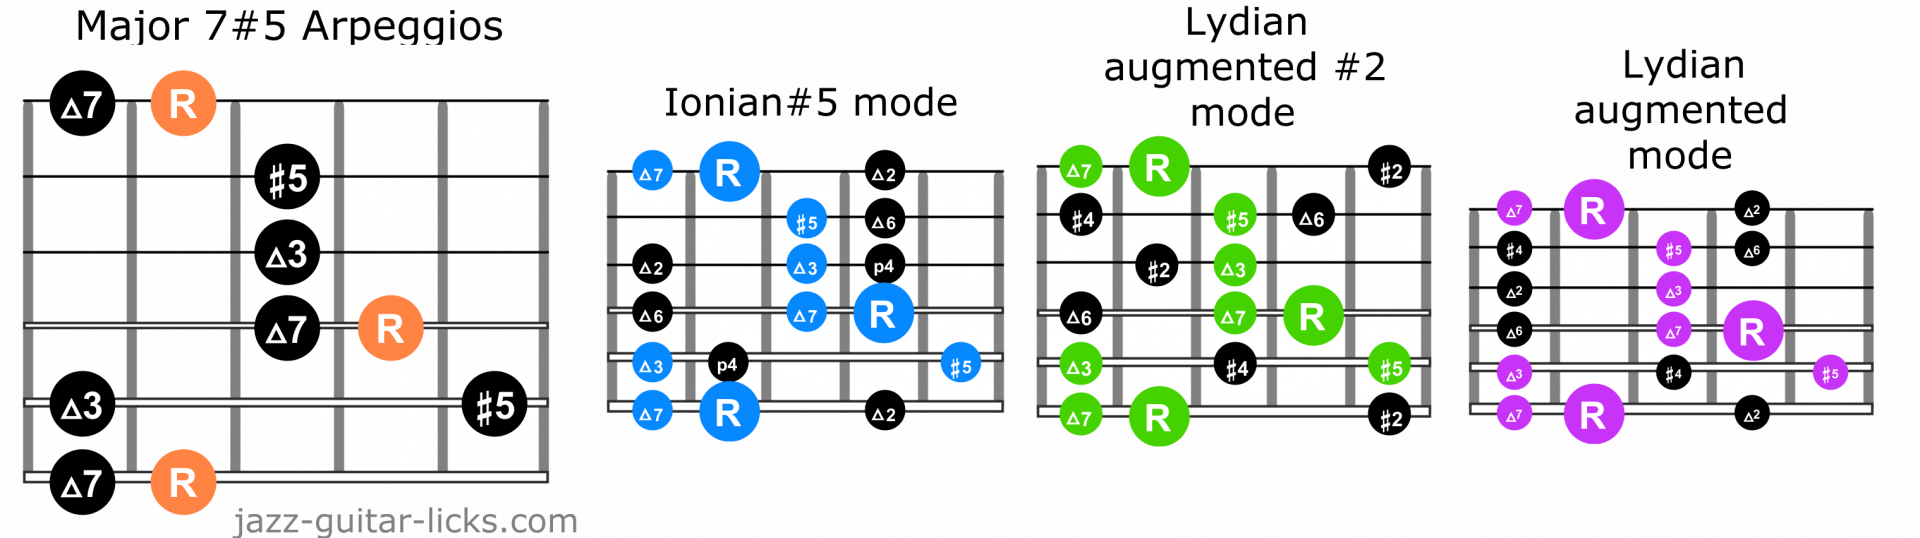 Major 7 augmented fifth arpeggio guitar scales